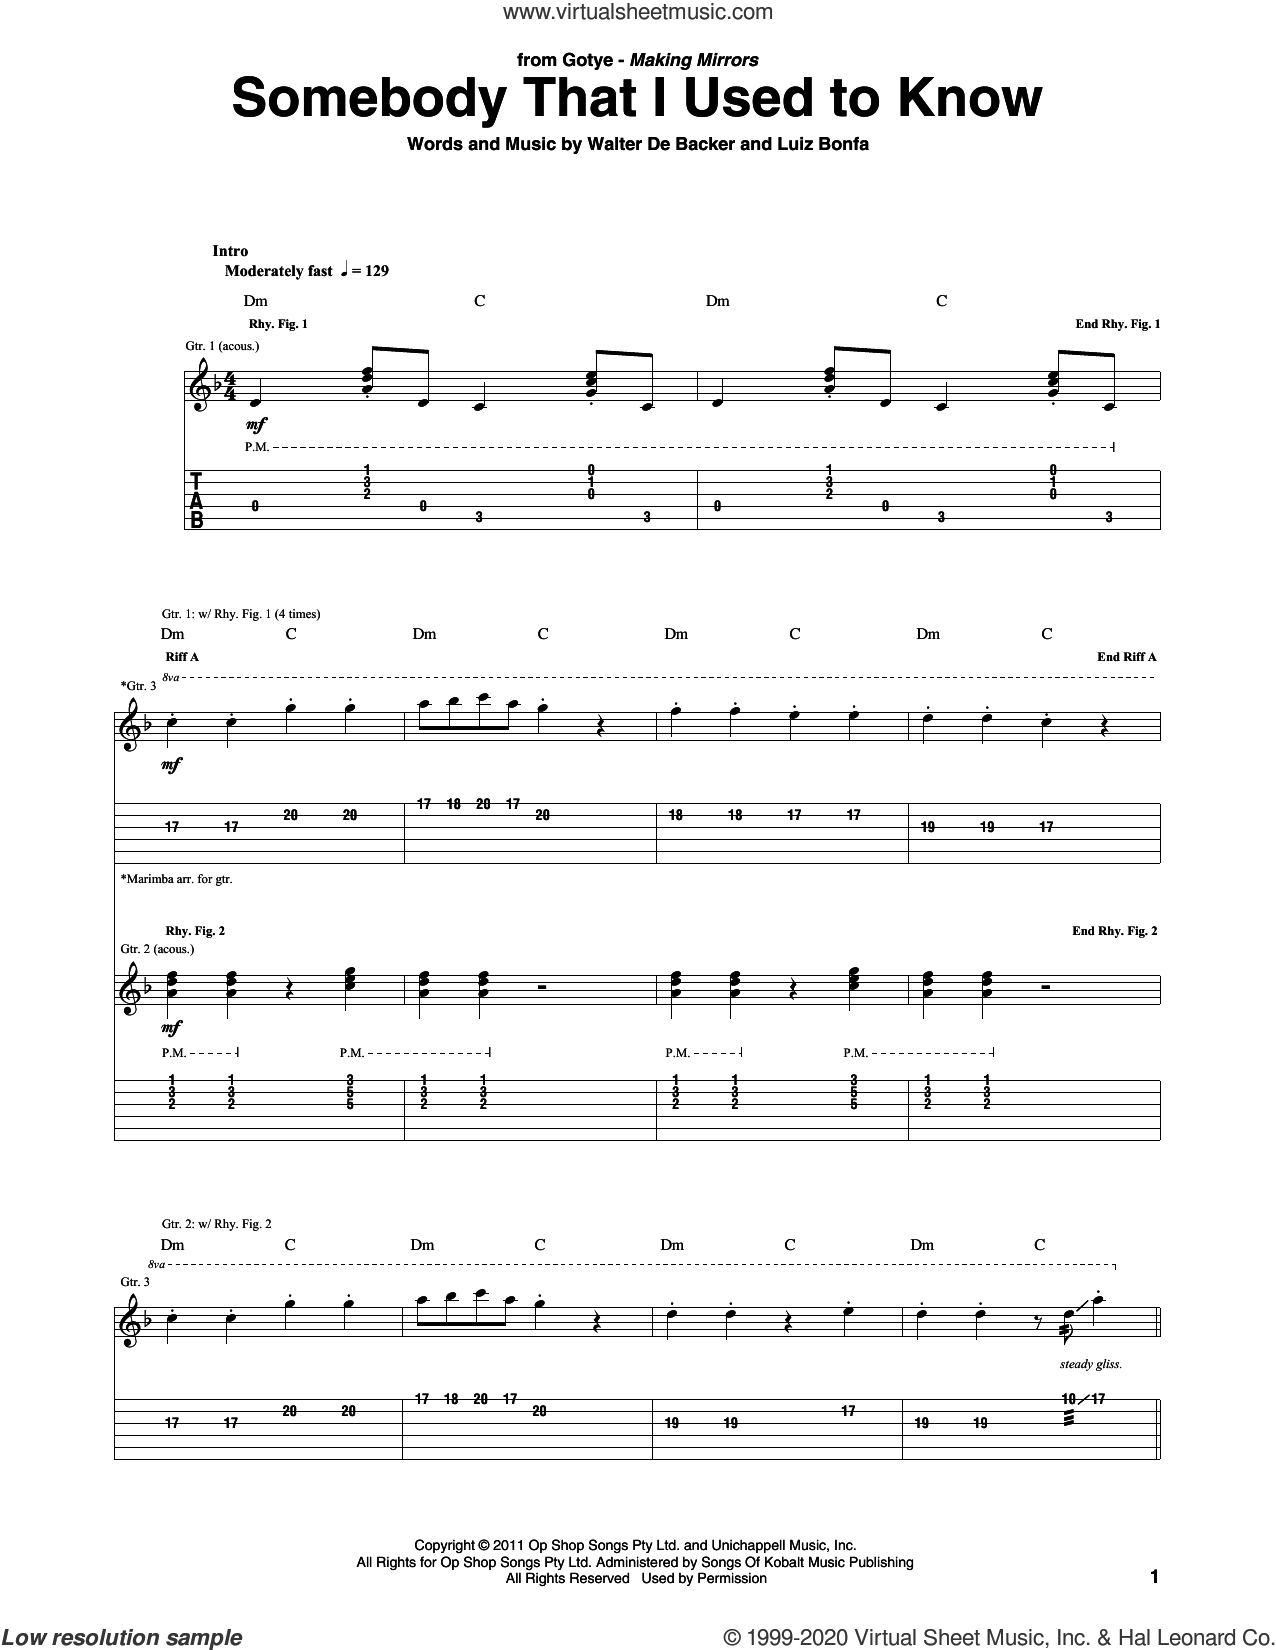 Somebody That I Used To Know (feat. Kimbra) sheet music for guitar (tablature) by Gotye, Luiz Bonfa and Walter De Backer, intermediate skill level